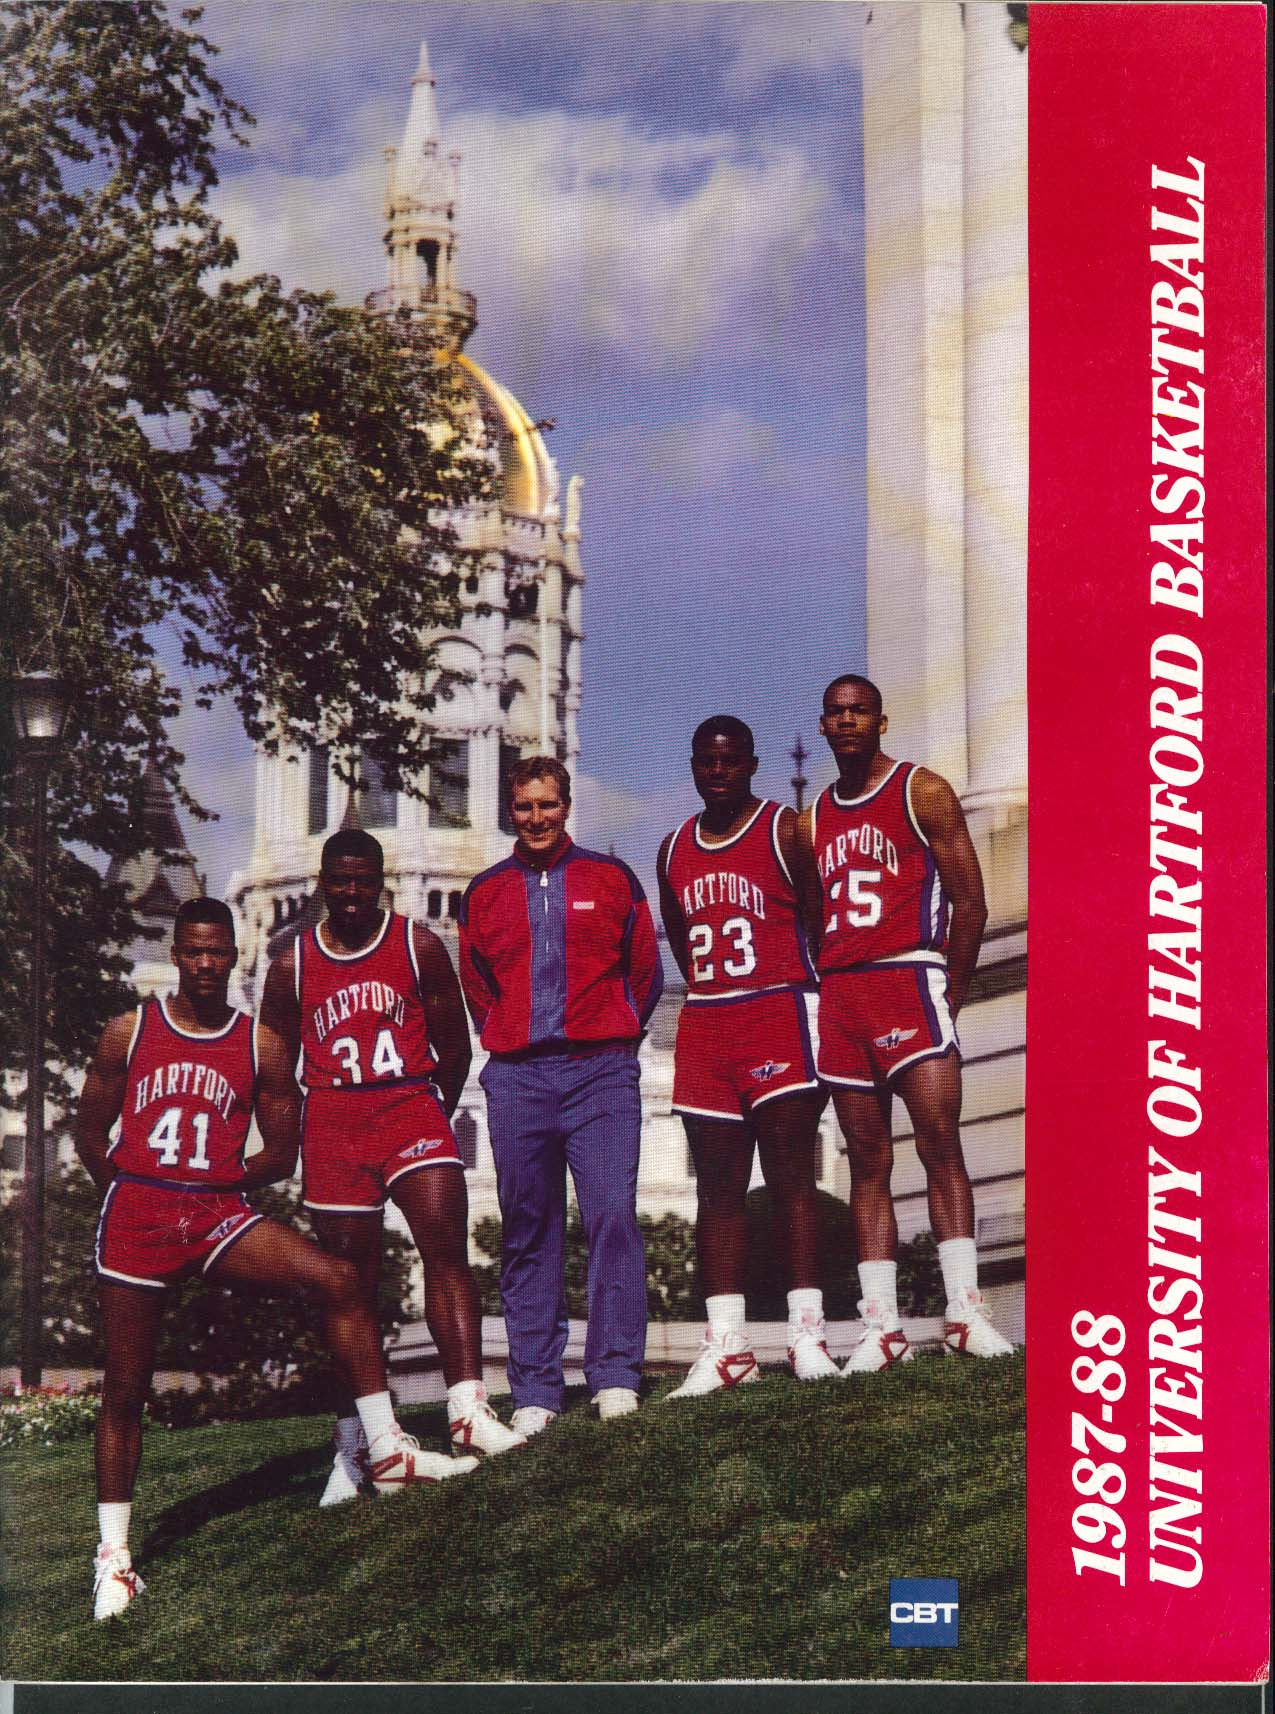 Image for University of Hartford Hawks Basketball Media Guide Yearbook 1987 1988